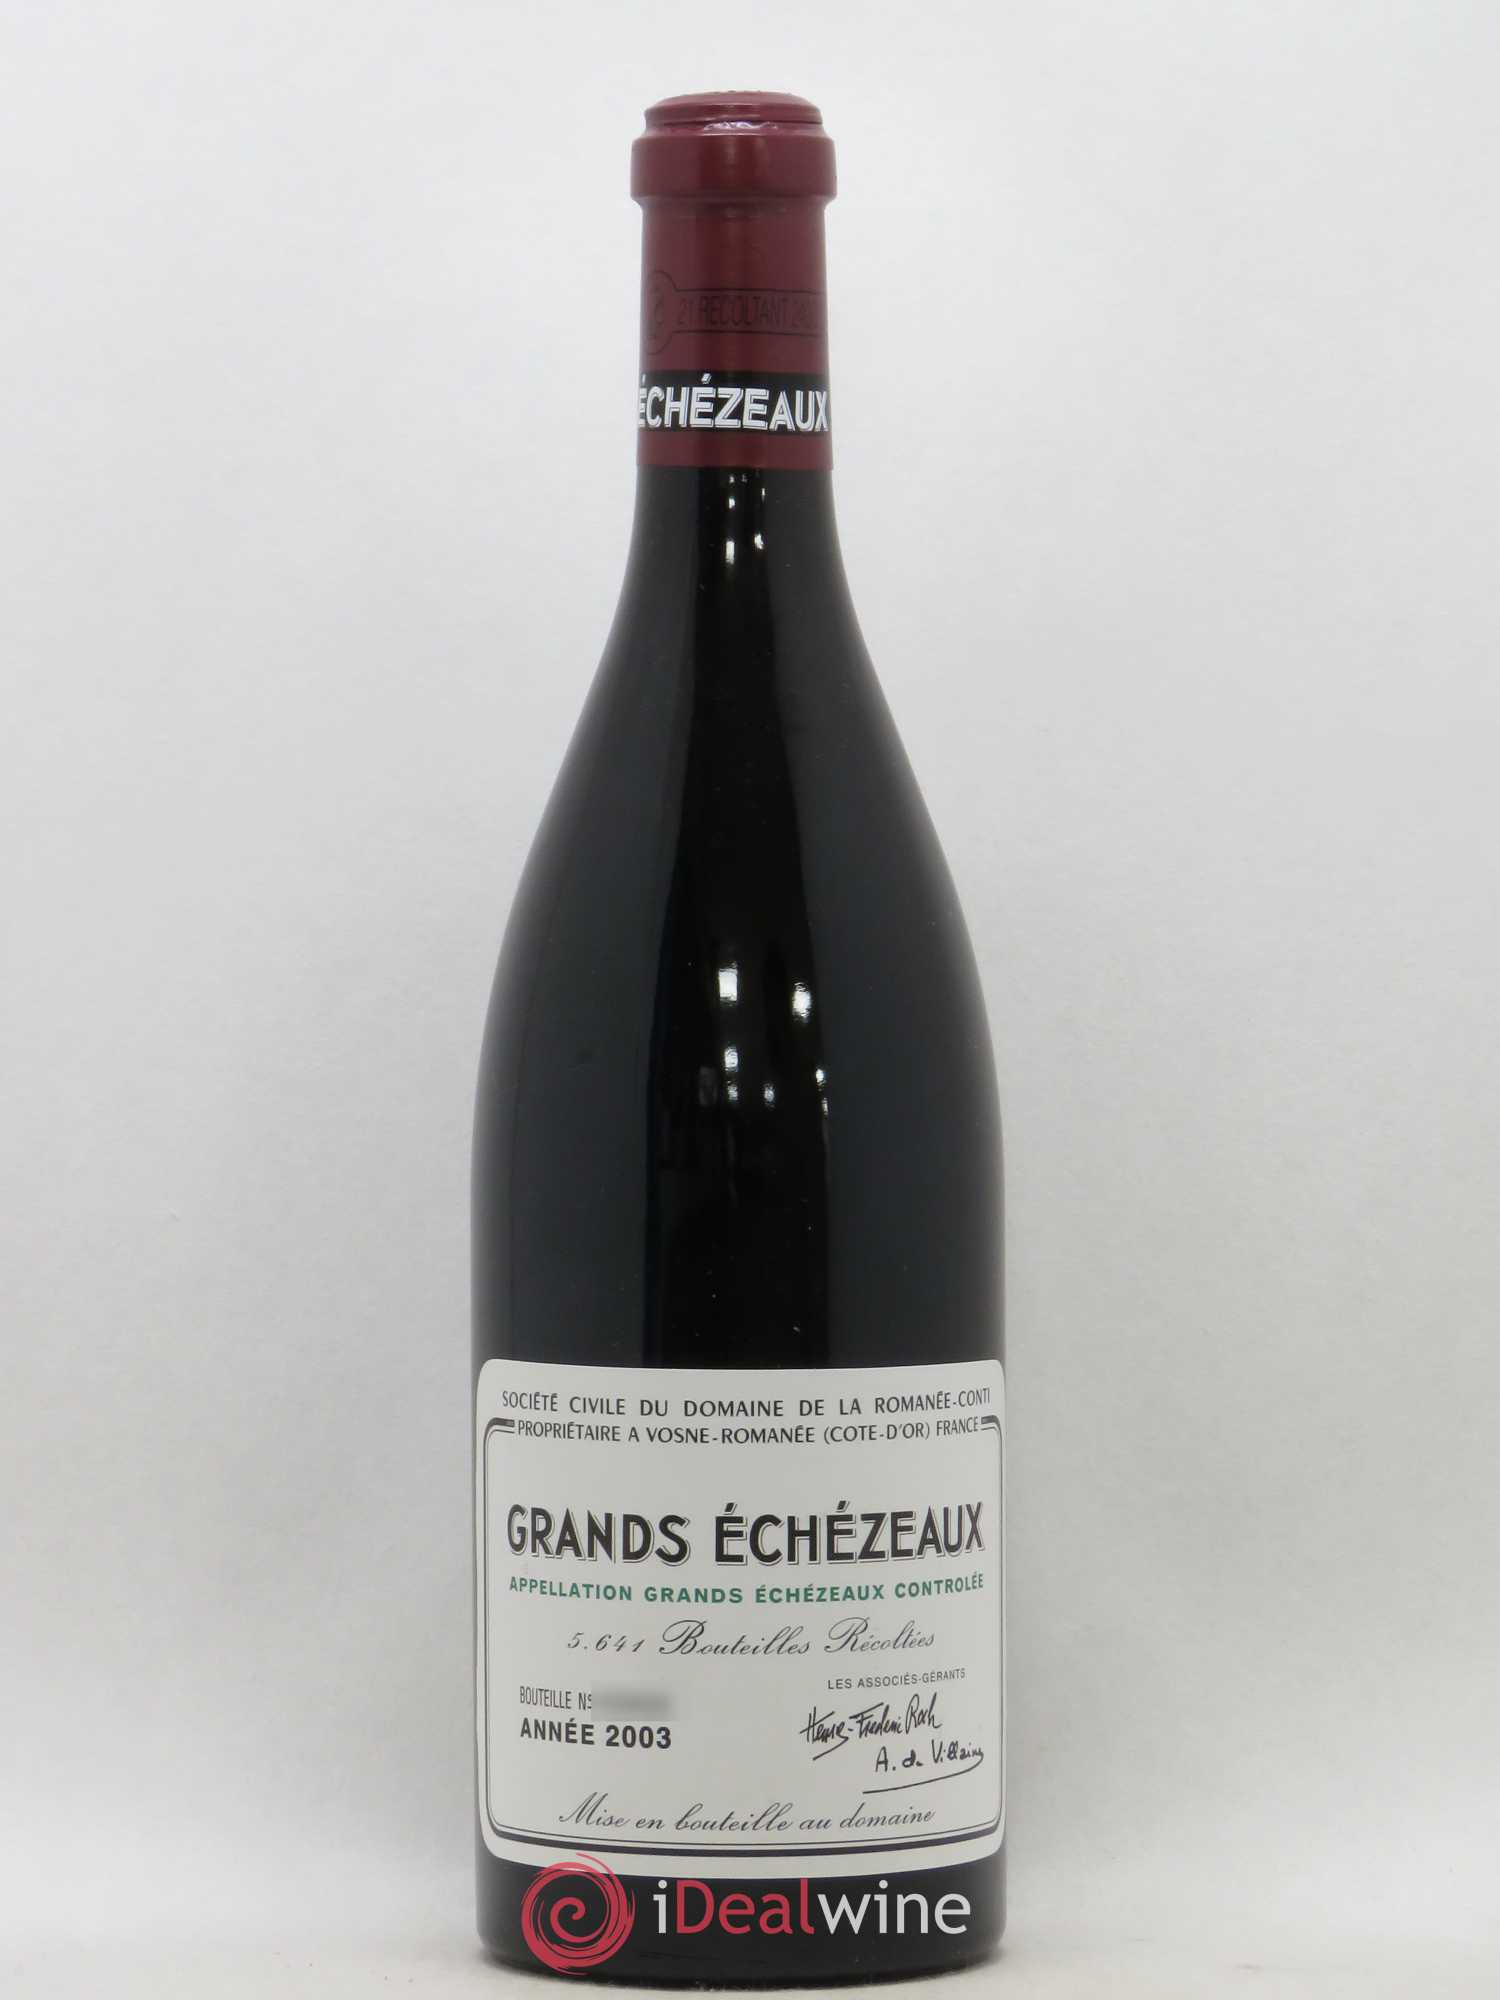 Grands-Echézeaux Grand Cru Domaine de la Romanée-Conti  2003 - Lot of 1 Bottle